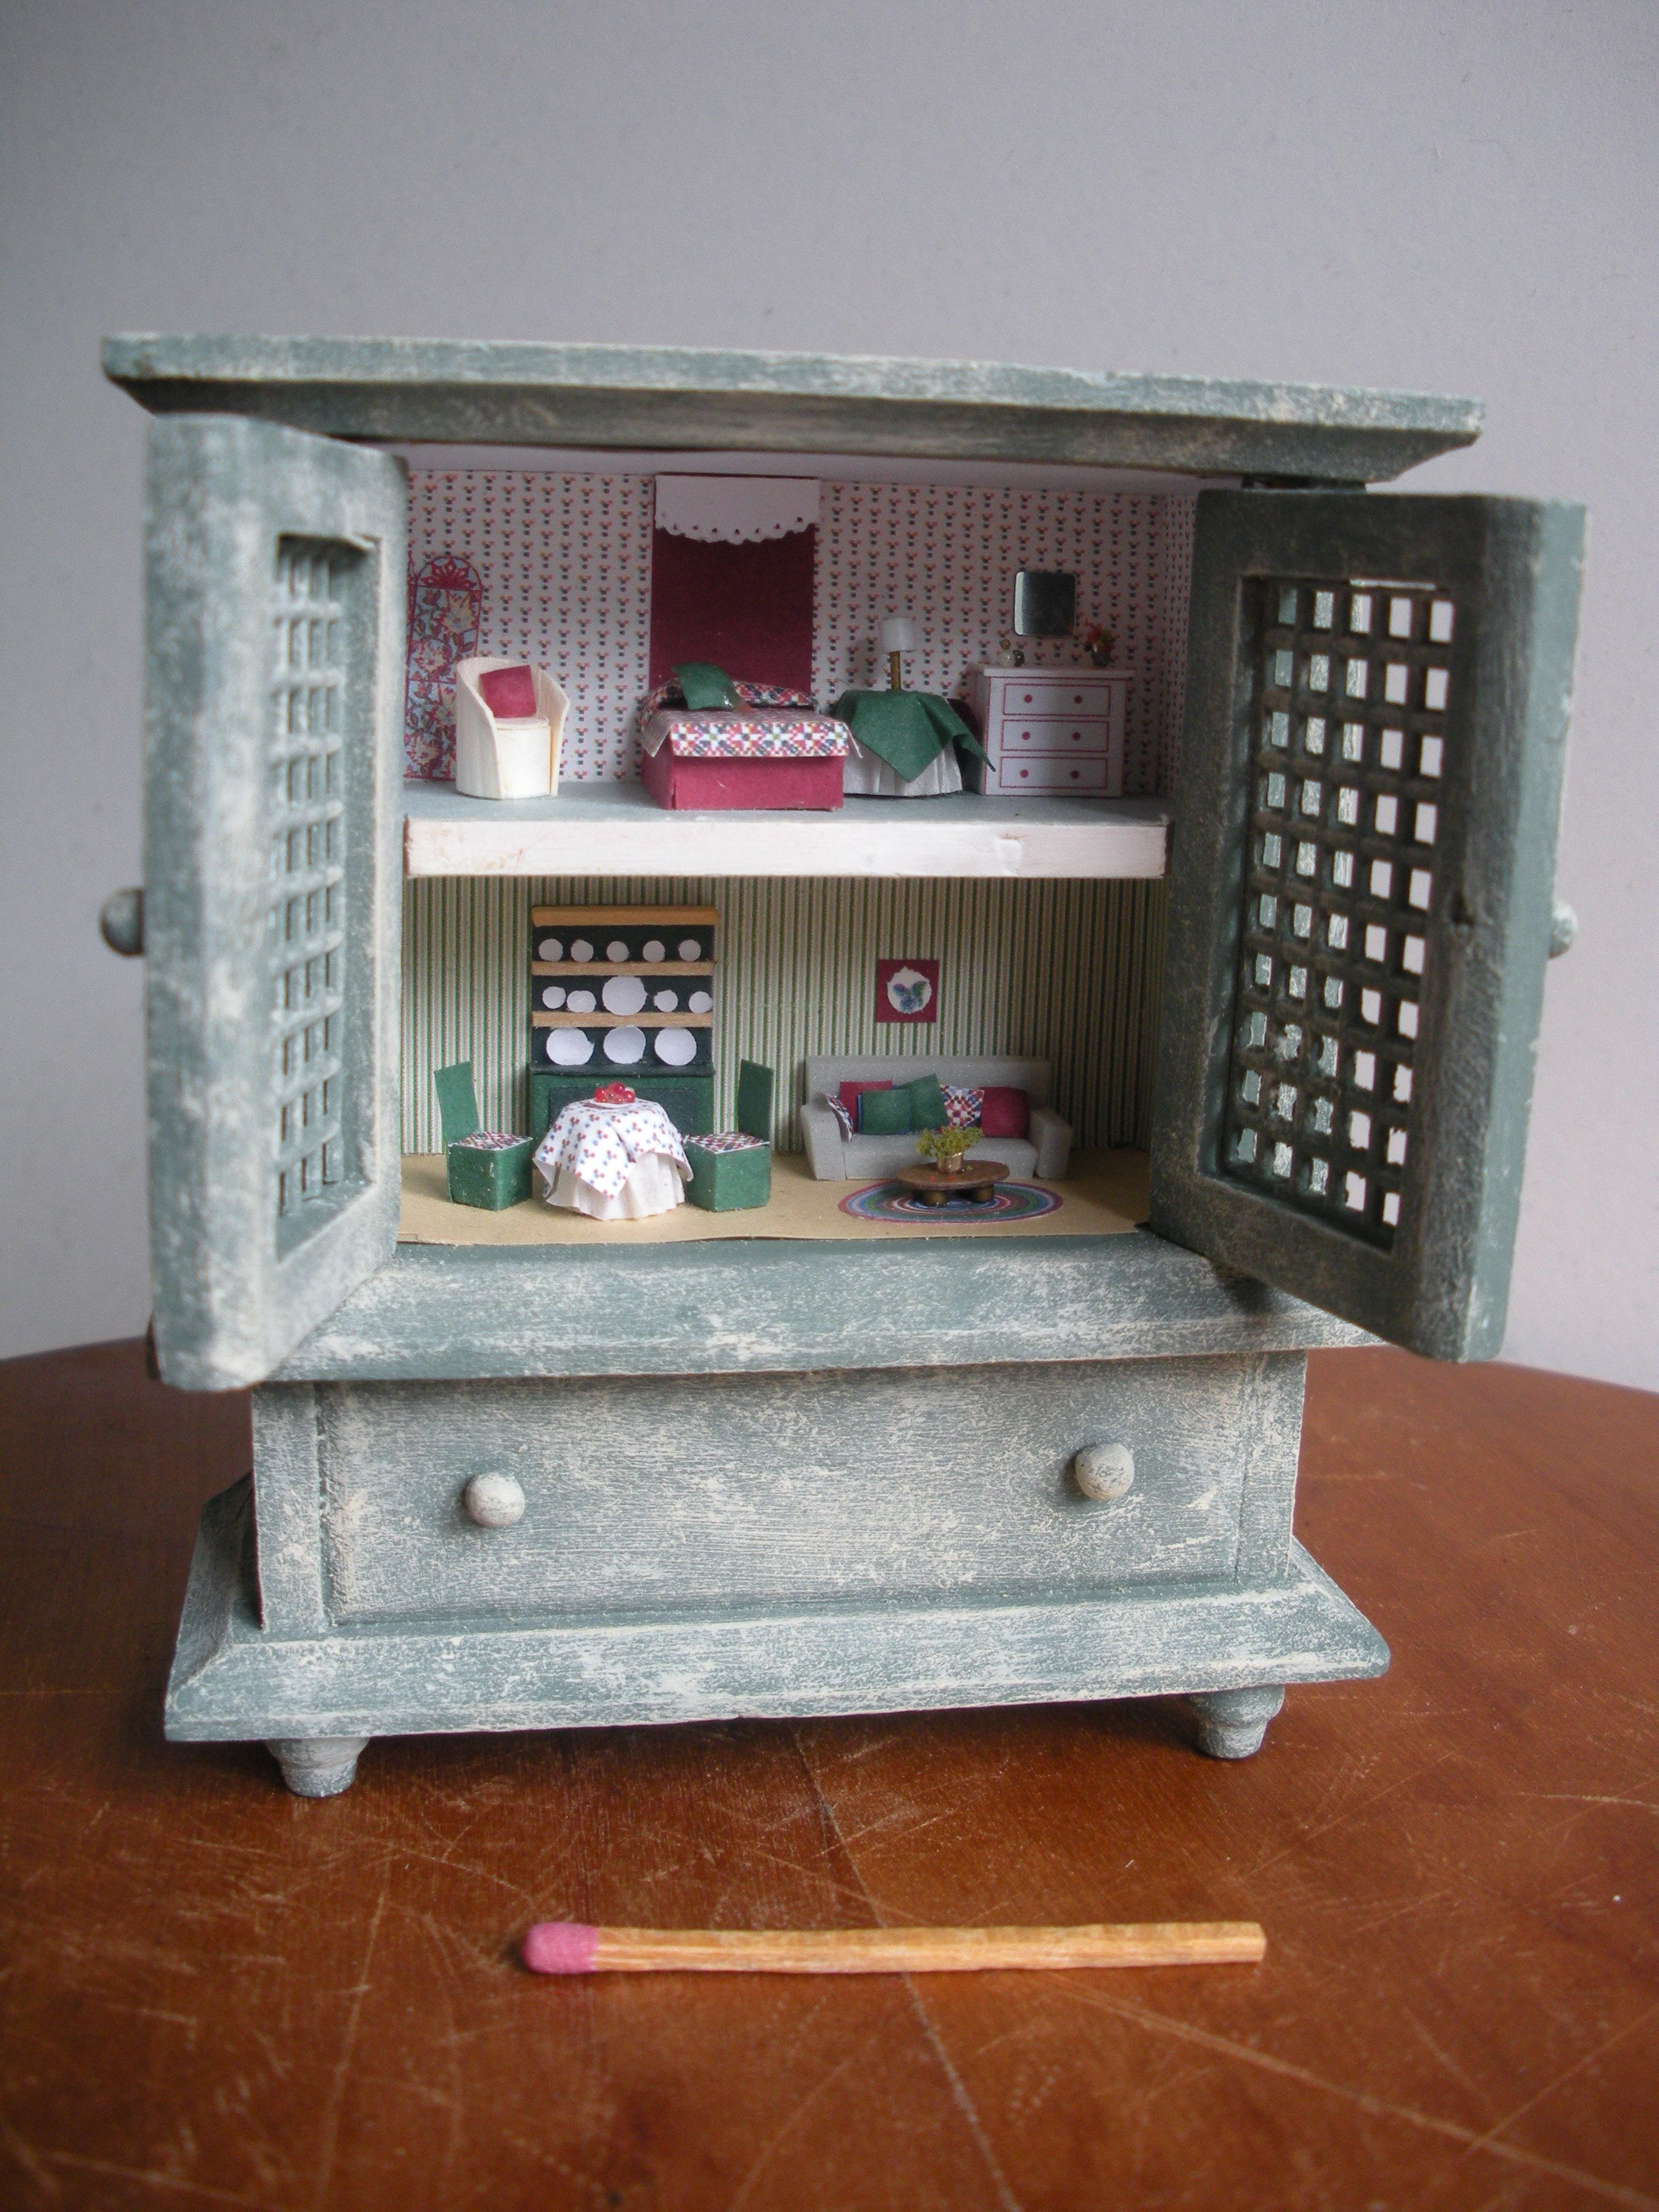 Tiny house in a cupboard 1:144 scale. Furniture made of paper and card.